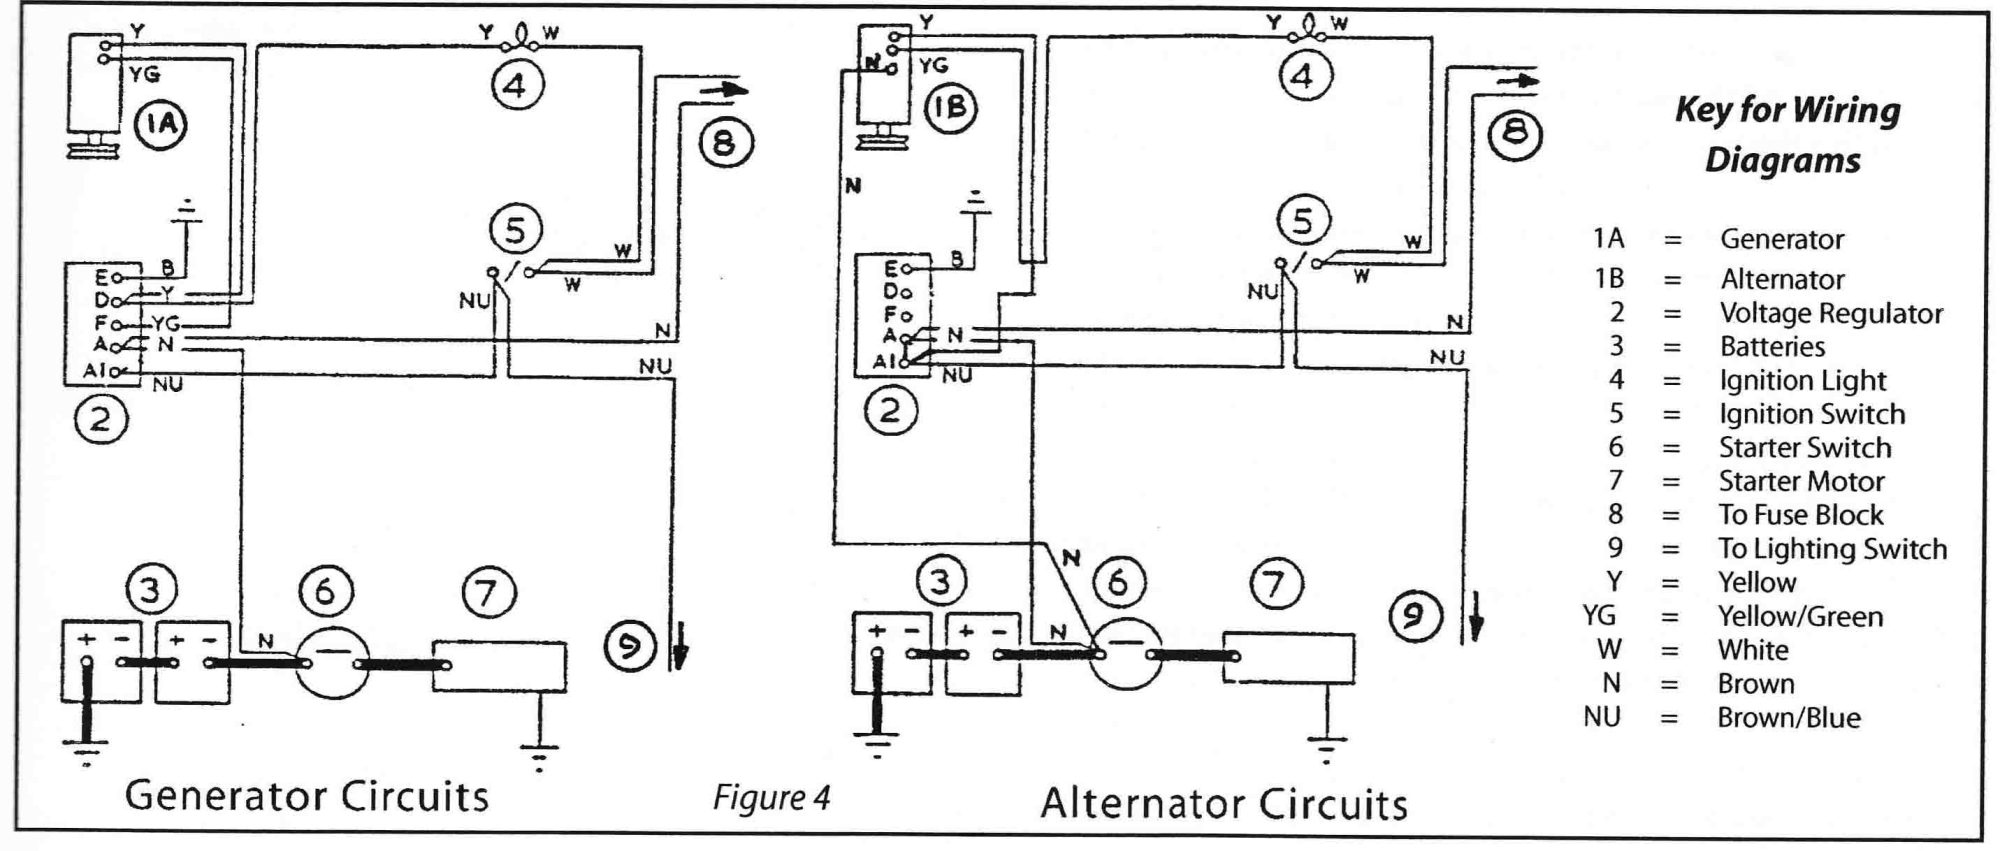 hight resolution of 73 mg midget wiring diagrams get free image about wiring